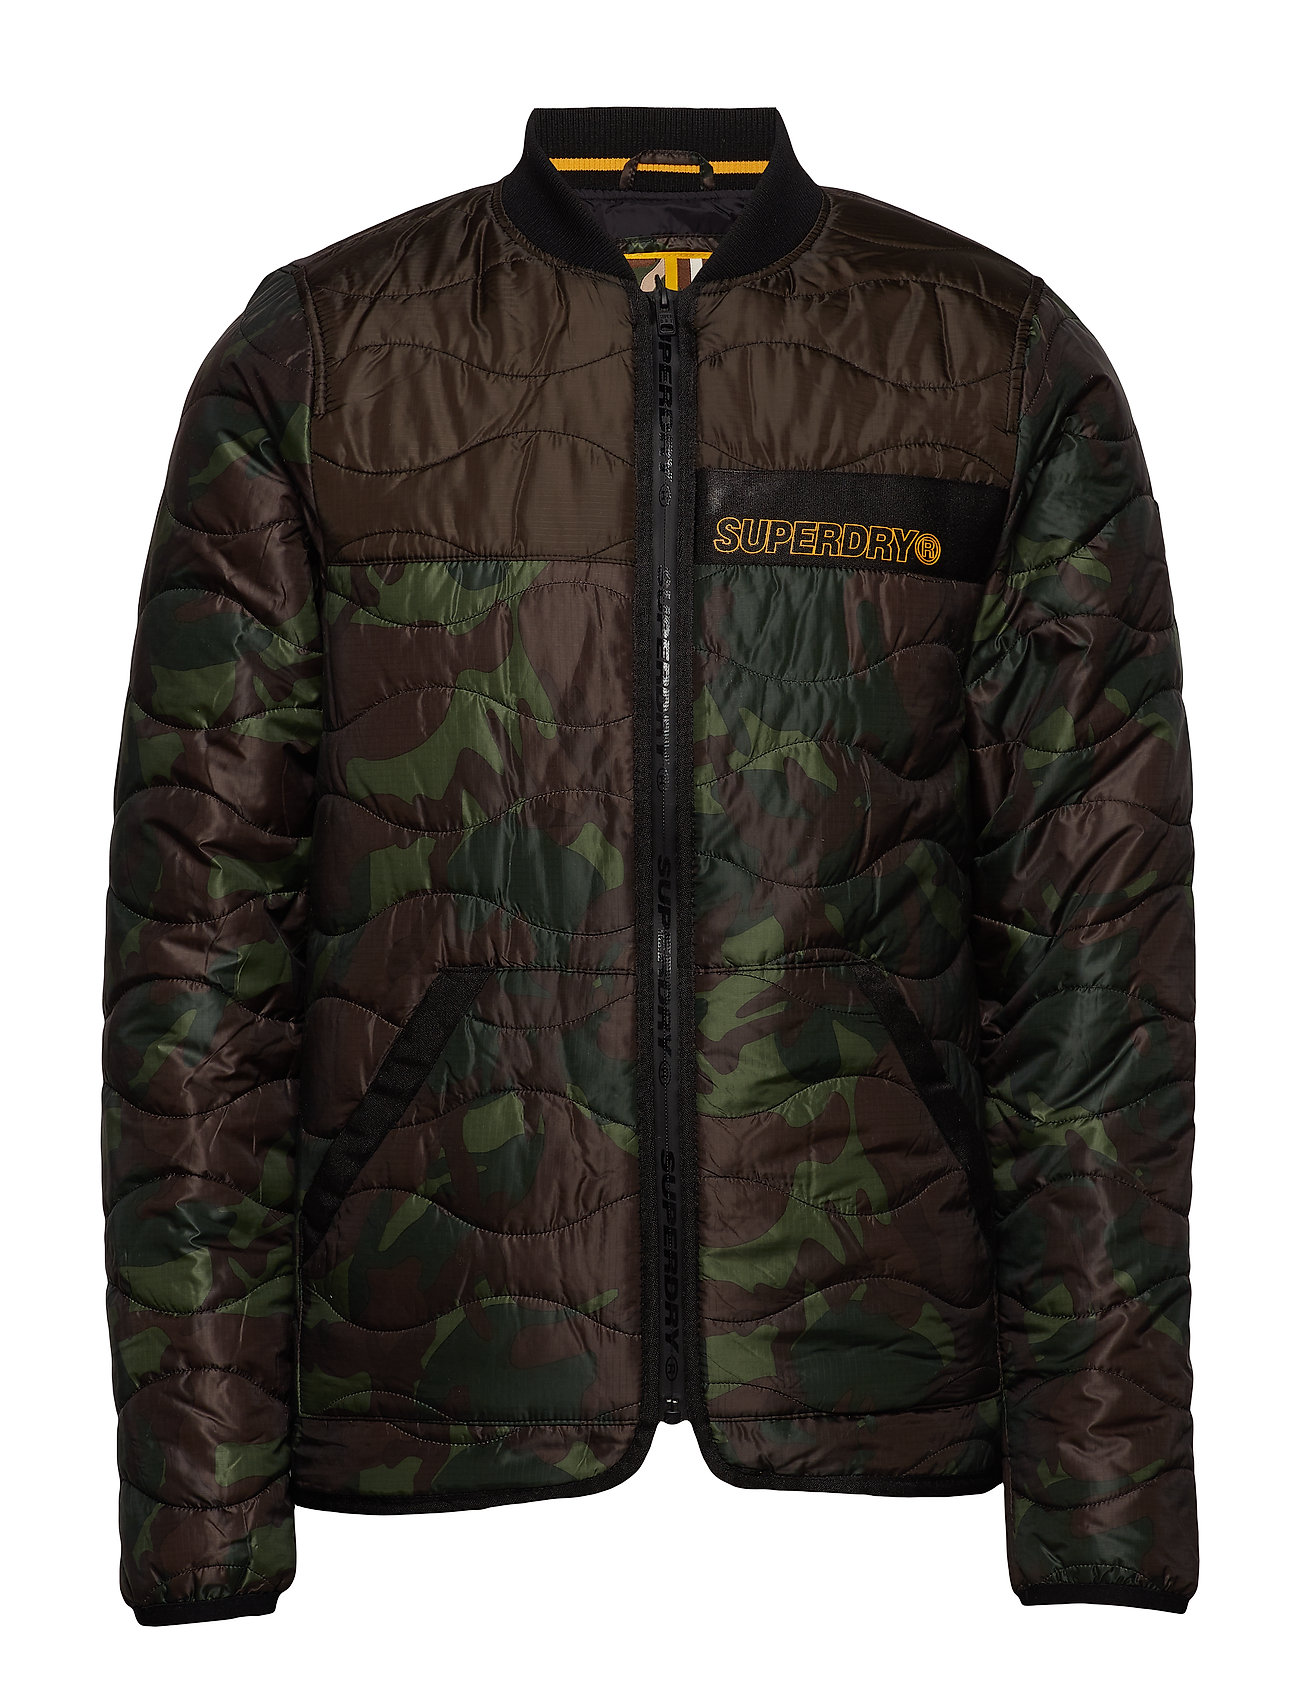 Superdry AIR CORPS PADDED LINER JACKET - MOODY CAMO/BLACK